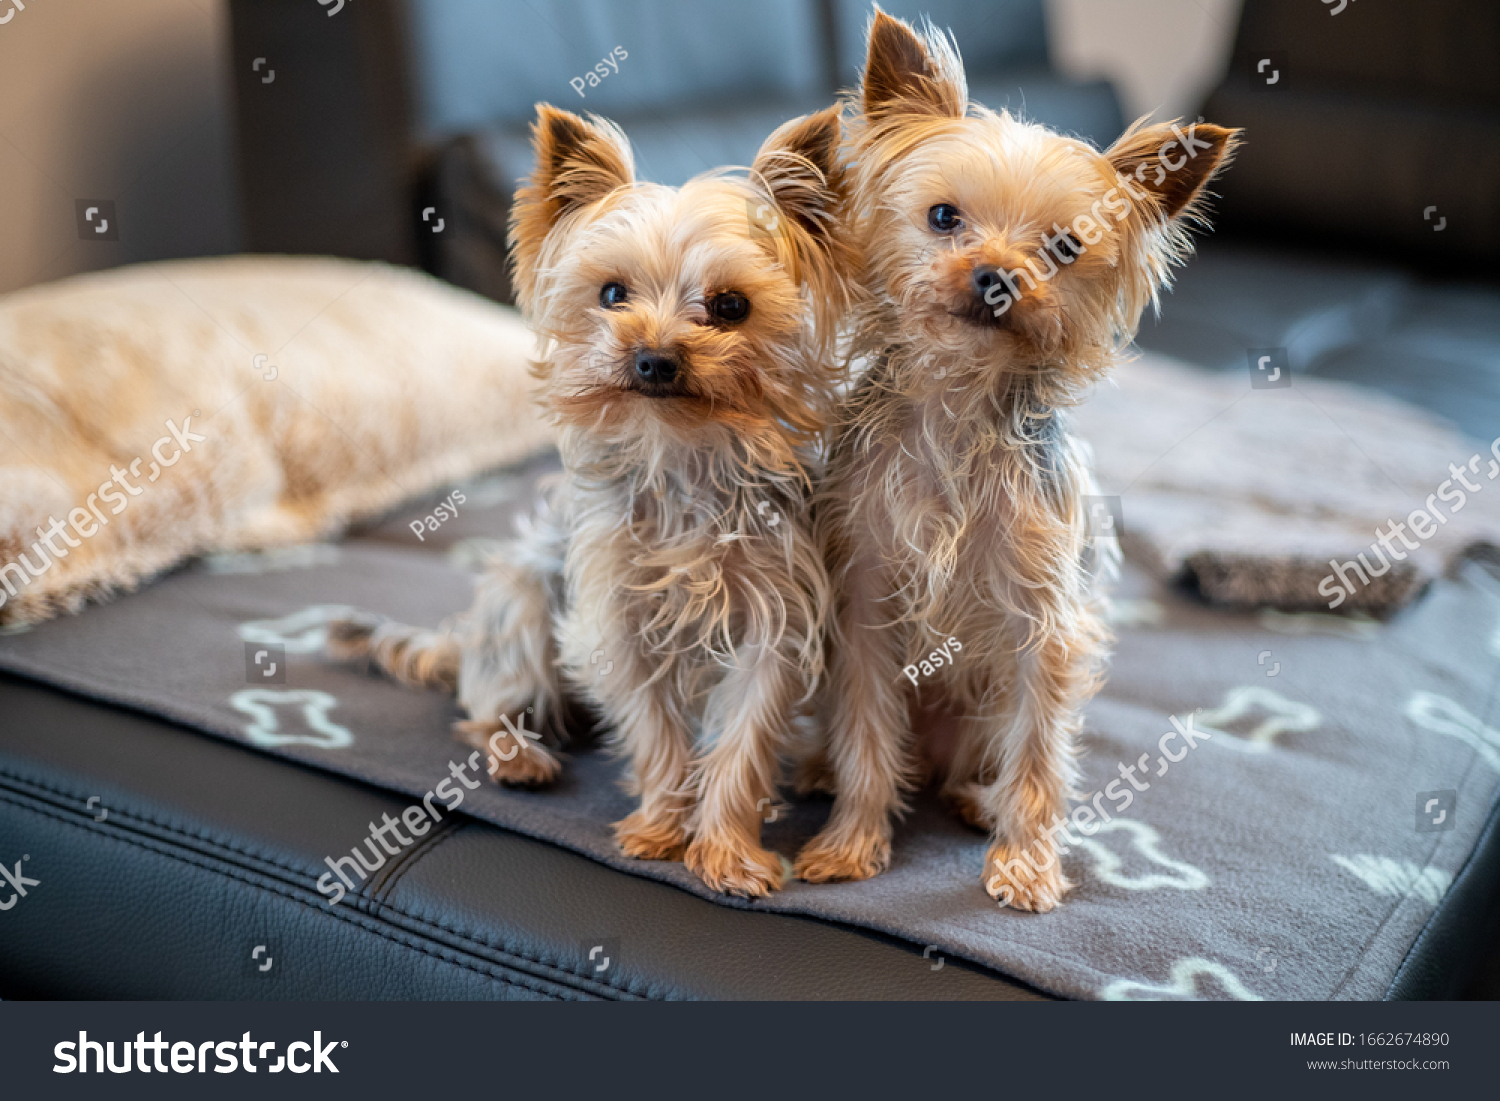 stock-photo-close-up-of-yorkshir-terrier